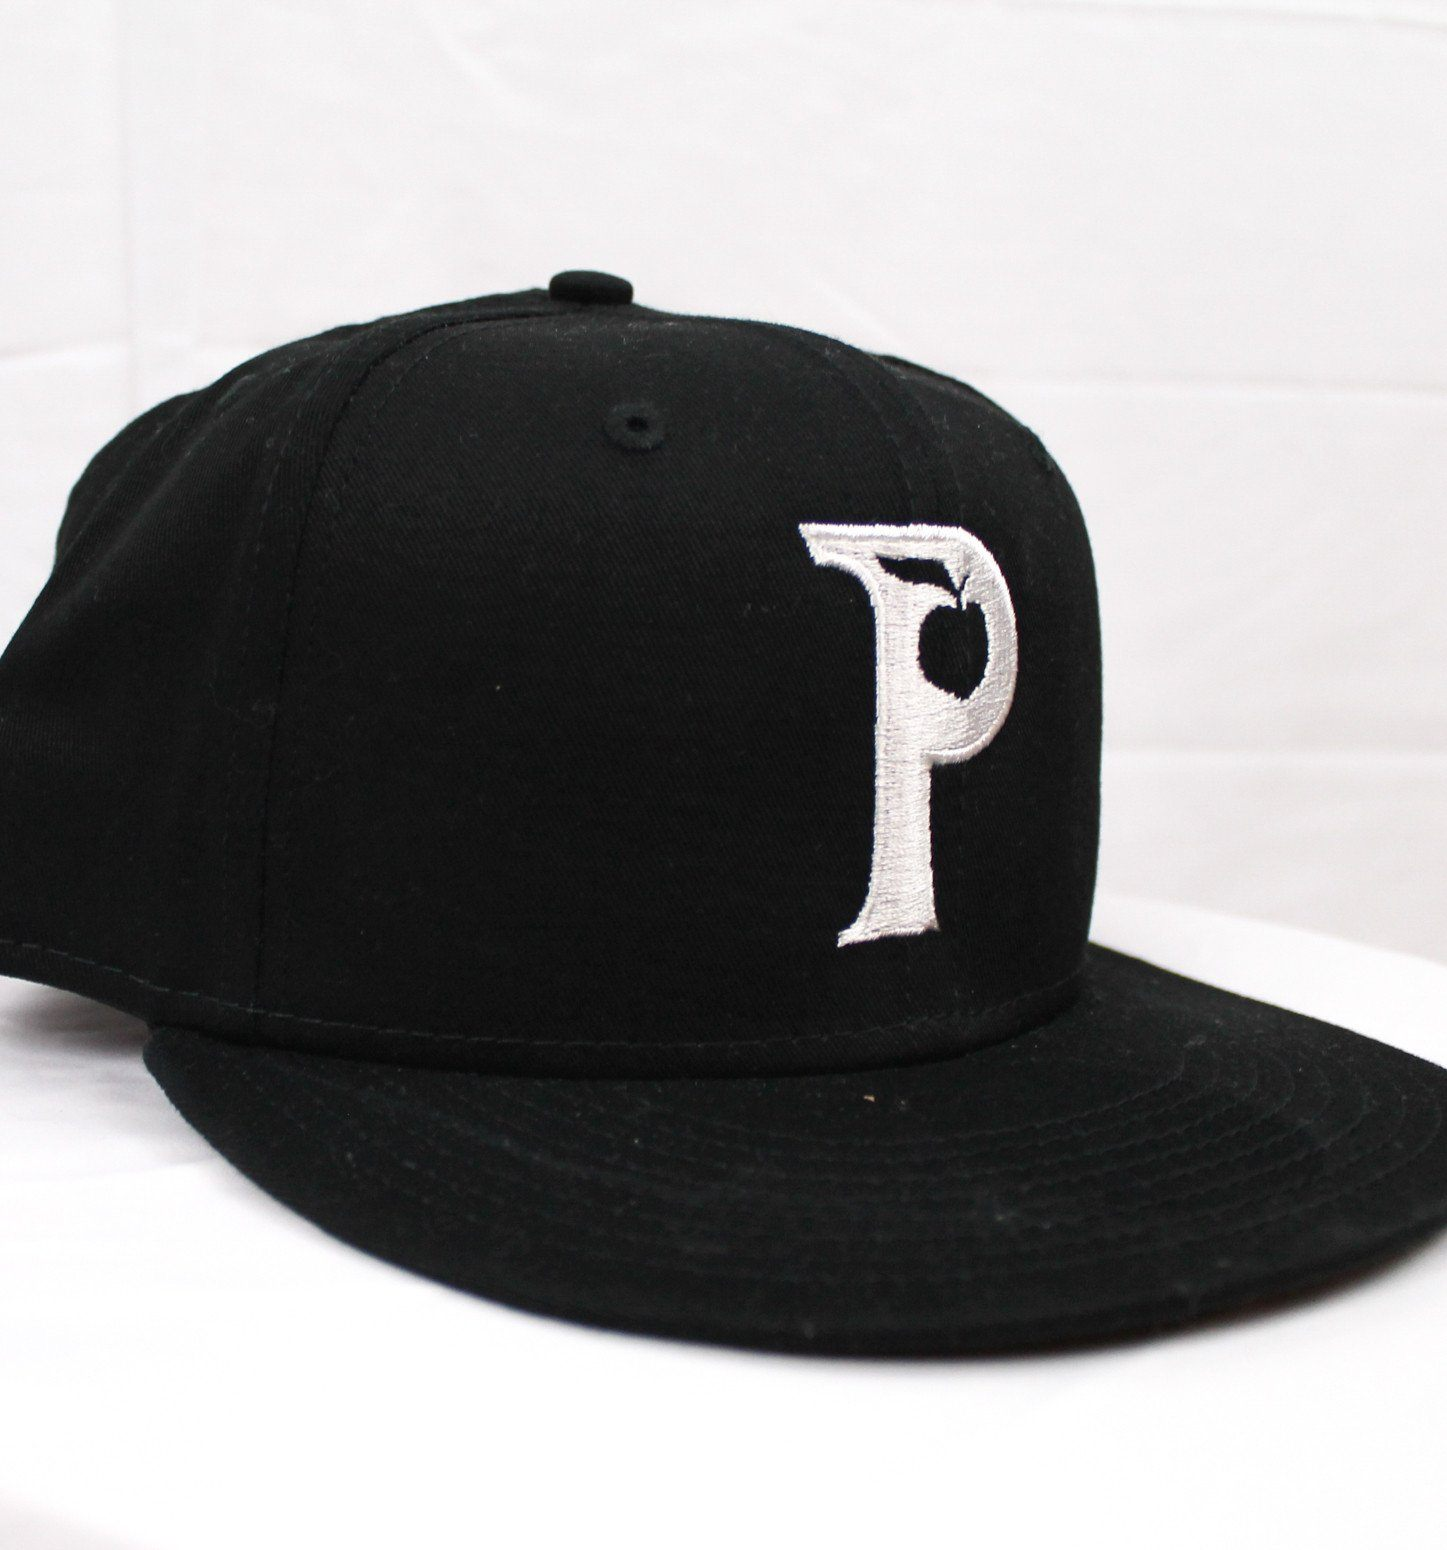 products/1450X1550Snapback_Black_White5.jpg